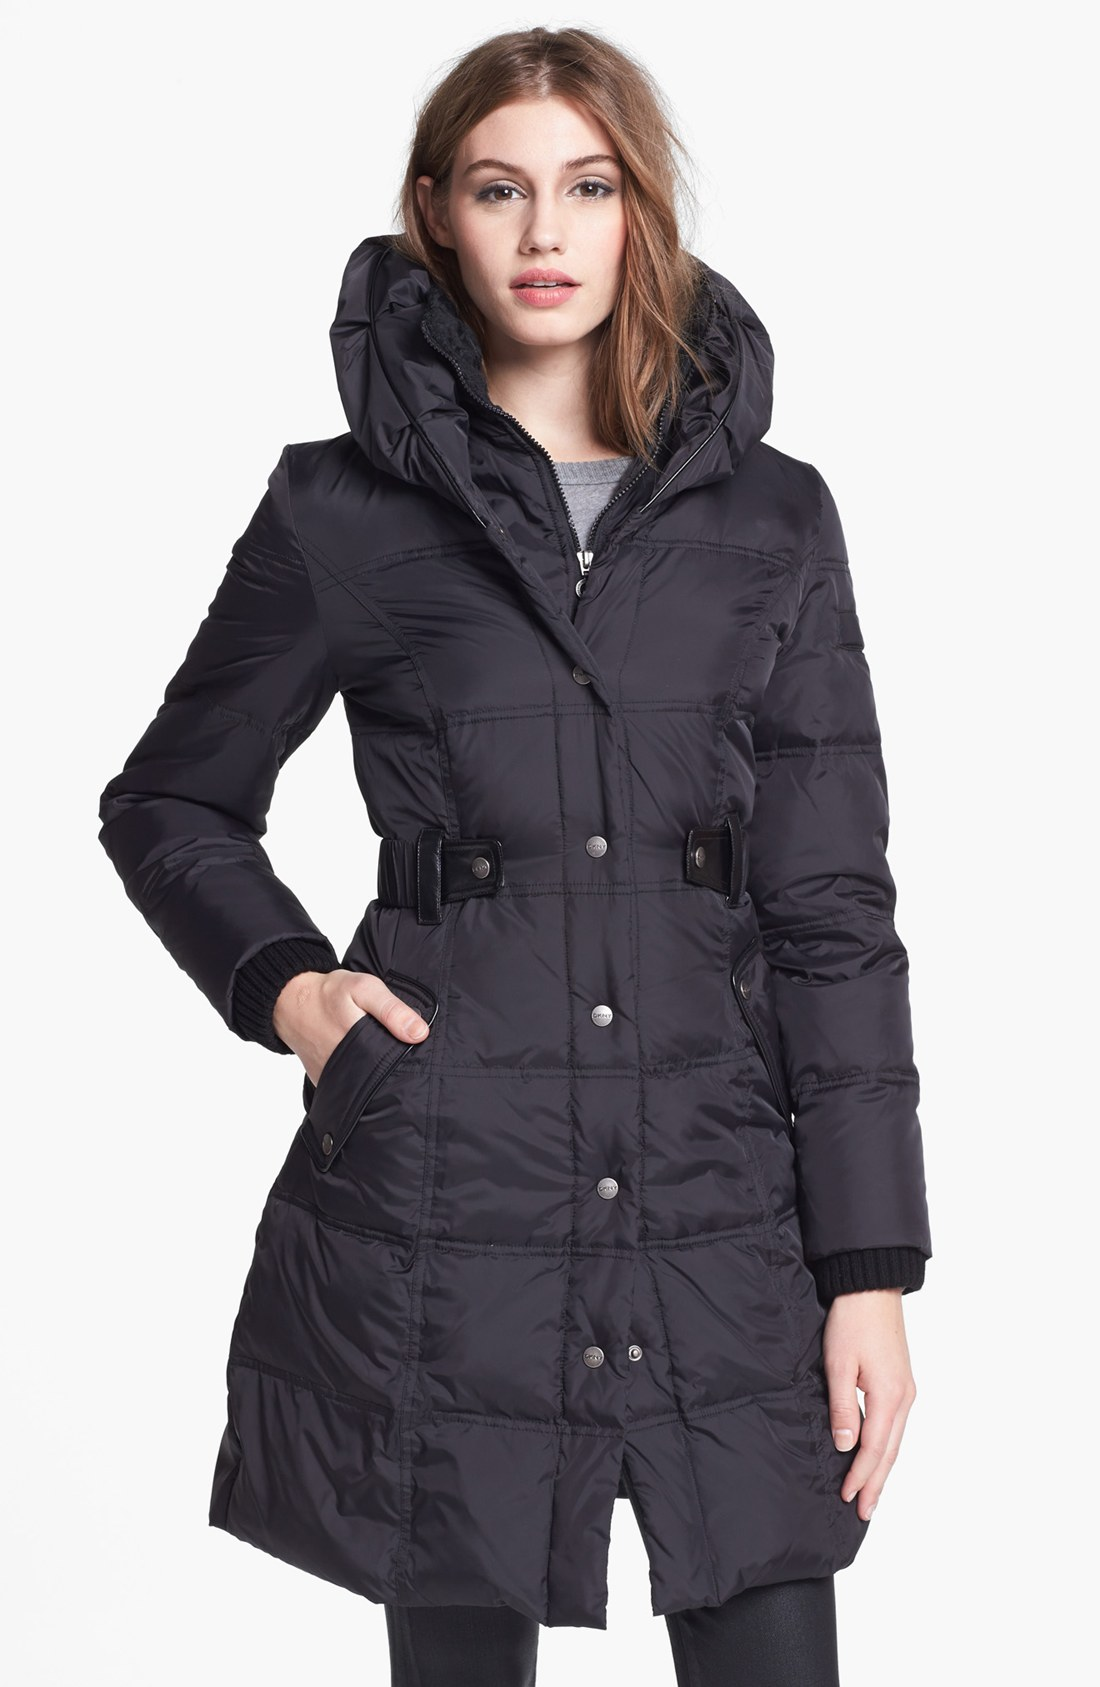 Dkny Faux Leather Trim Quilted Coat in Black | Lyst